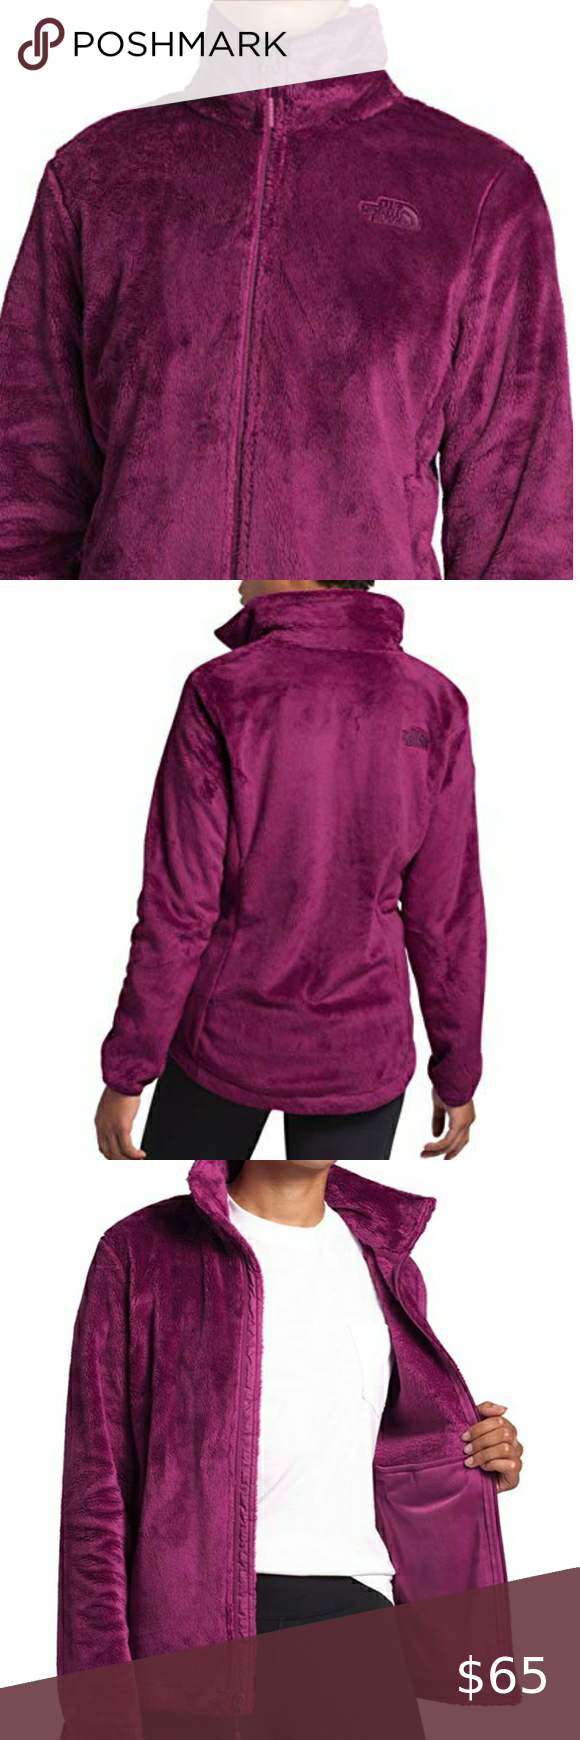 Nwt North Face Osito Jacket In 2020 North Face Women Clothes Design Jacket Brands [ 1740 x 580 Pixel ]